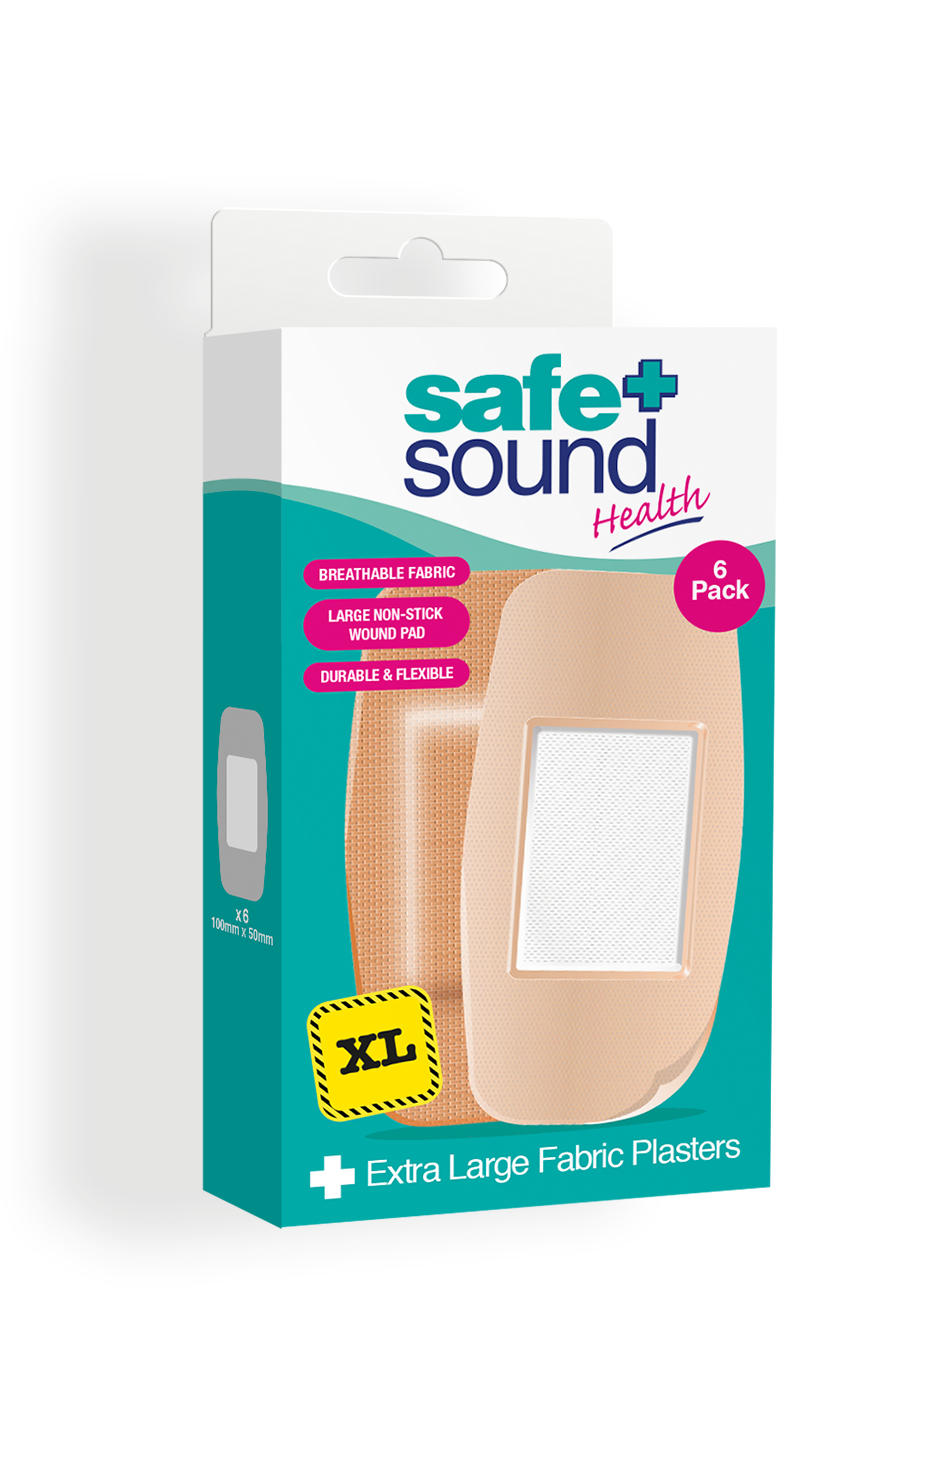 Safe and Sound Health Extra Large Elbow and Knee Fabric Plasters